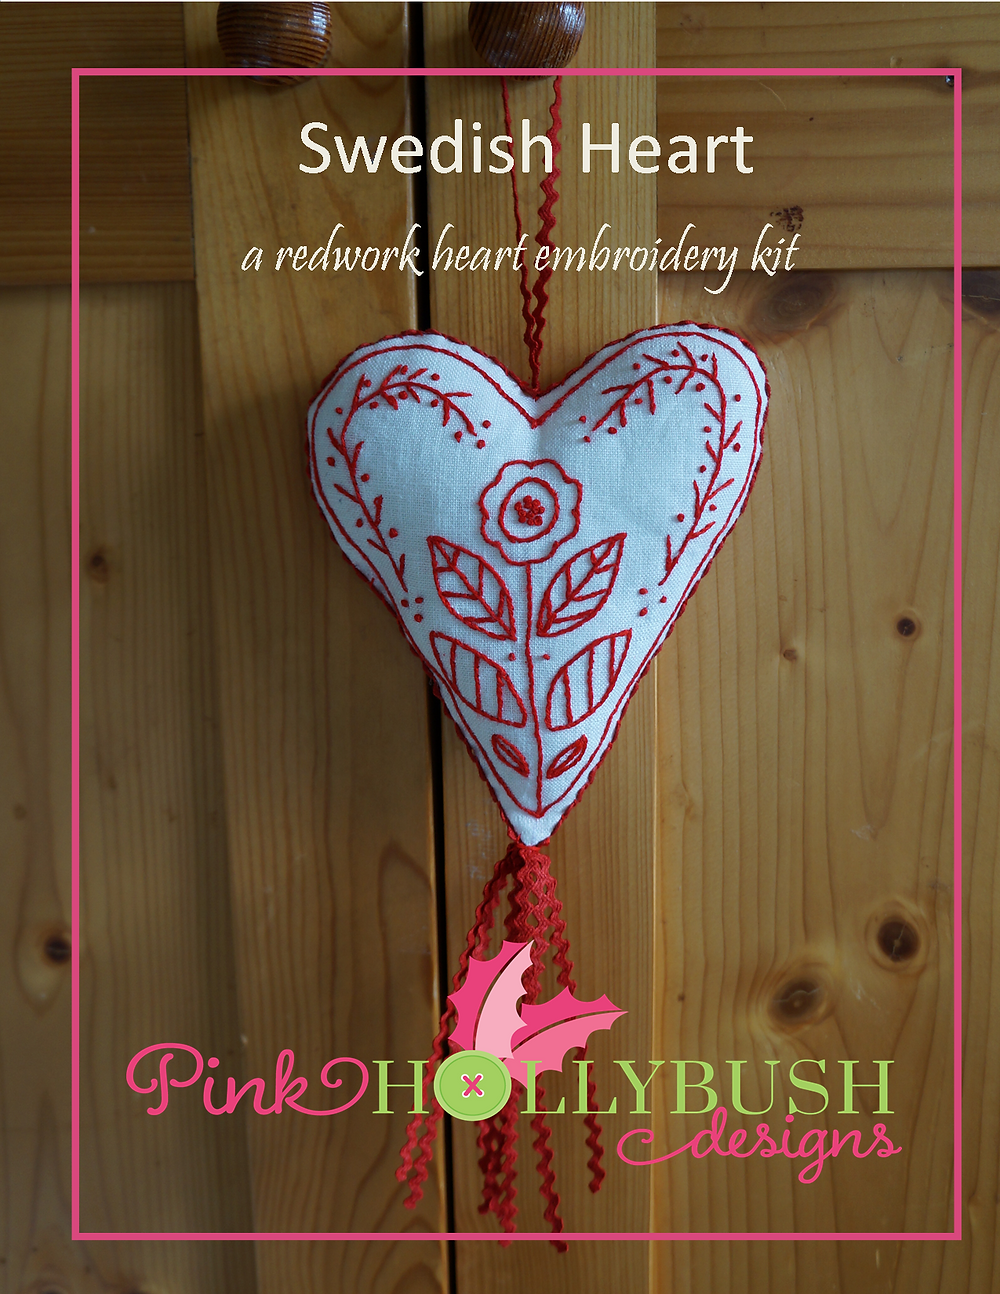 Swedish Redwork Heart Embroidery Kit